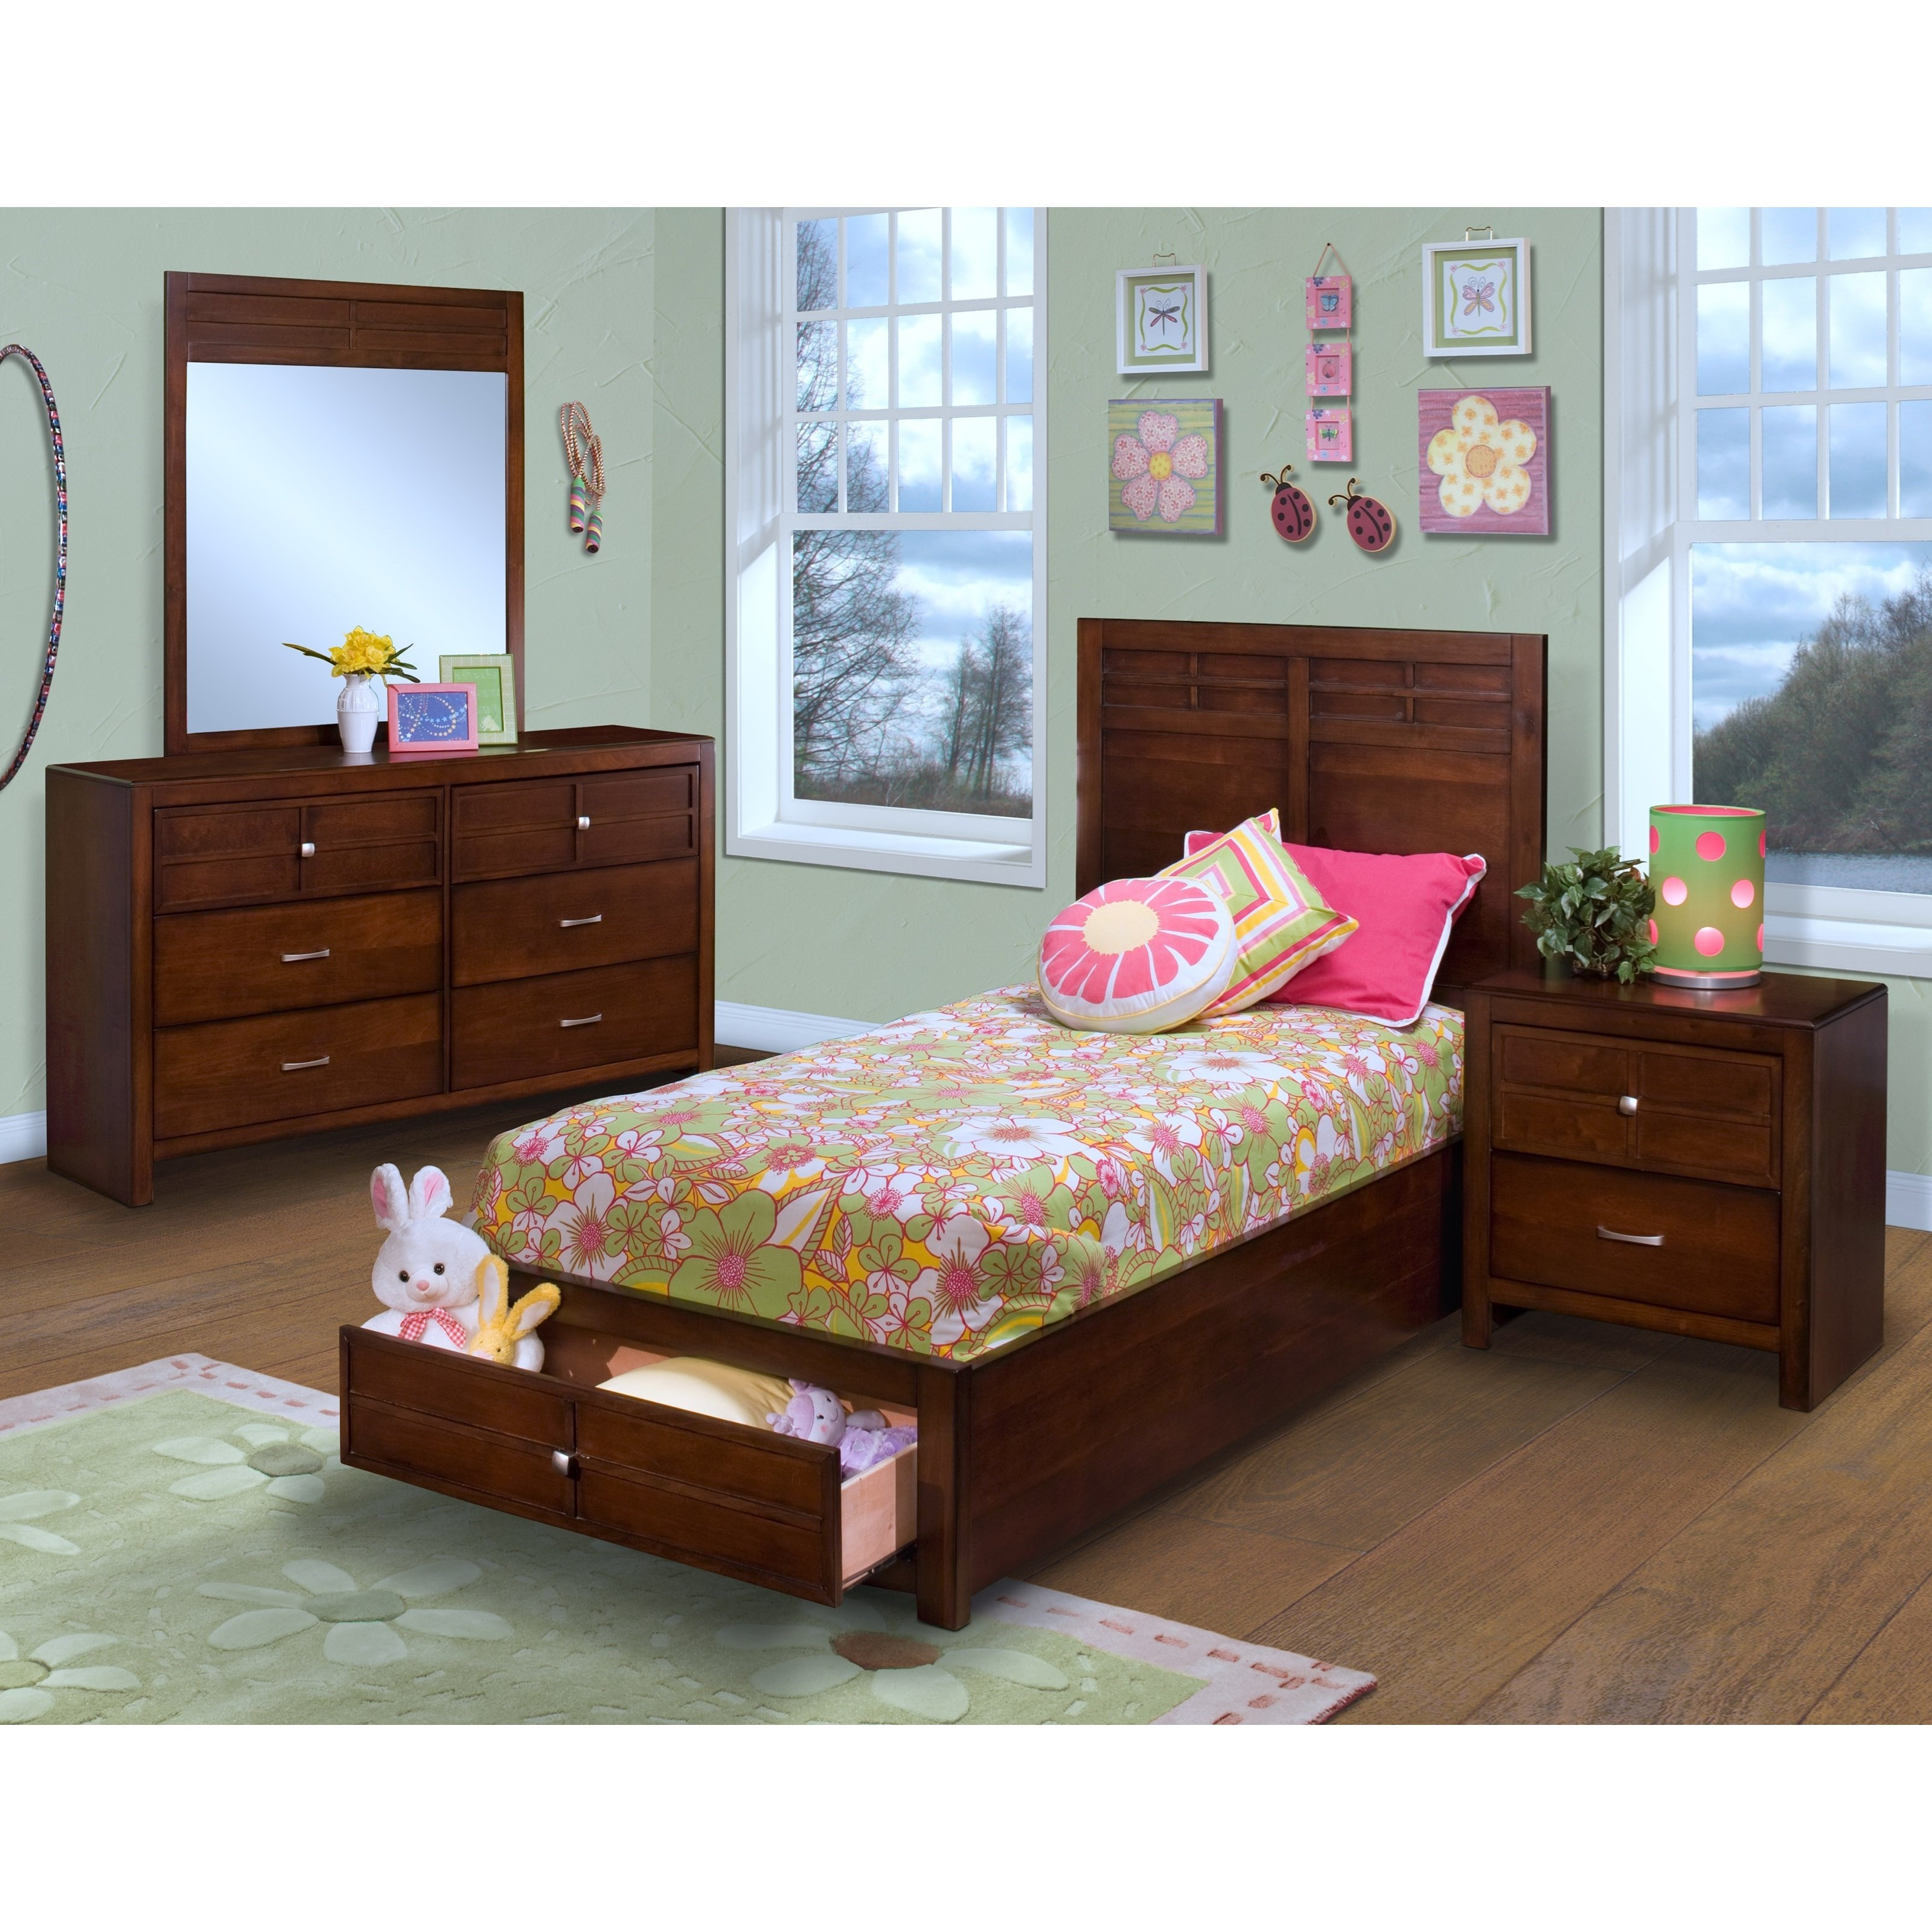 Kensington Twin Bedroom Group by New Classic at H.L. Stephens